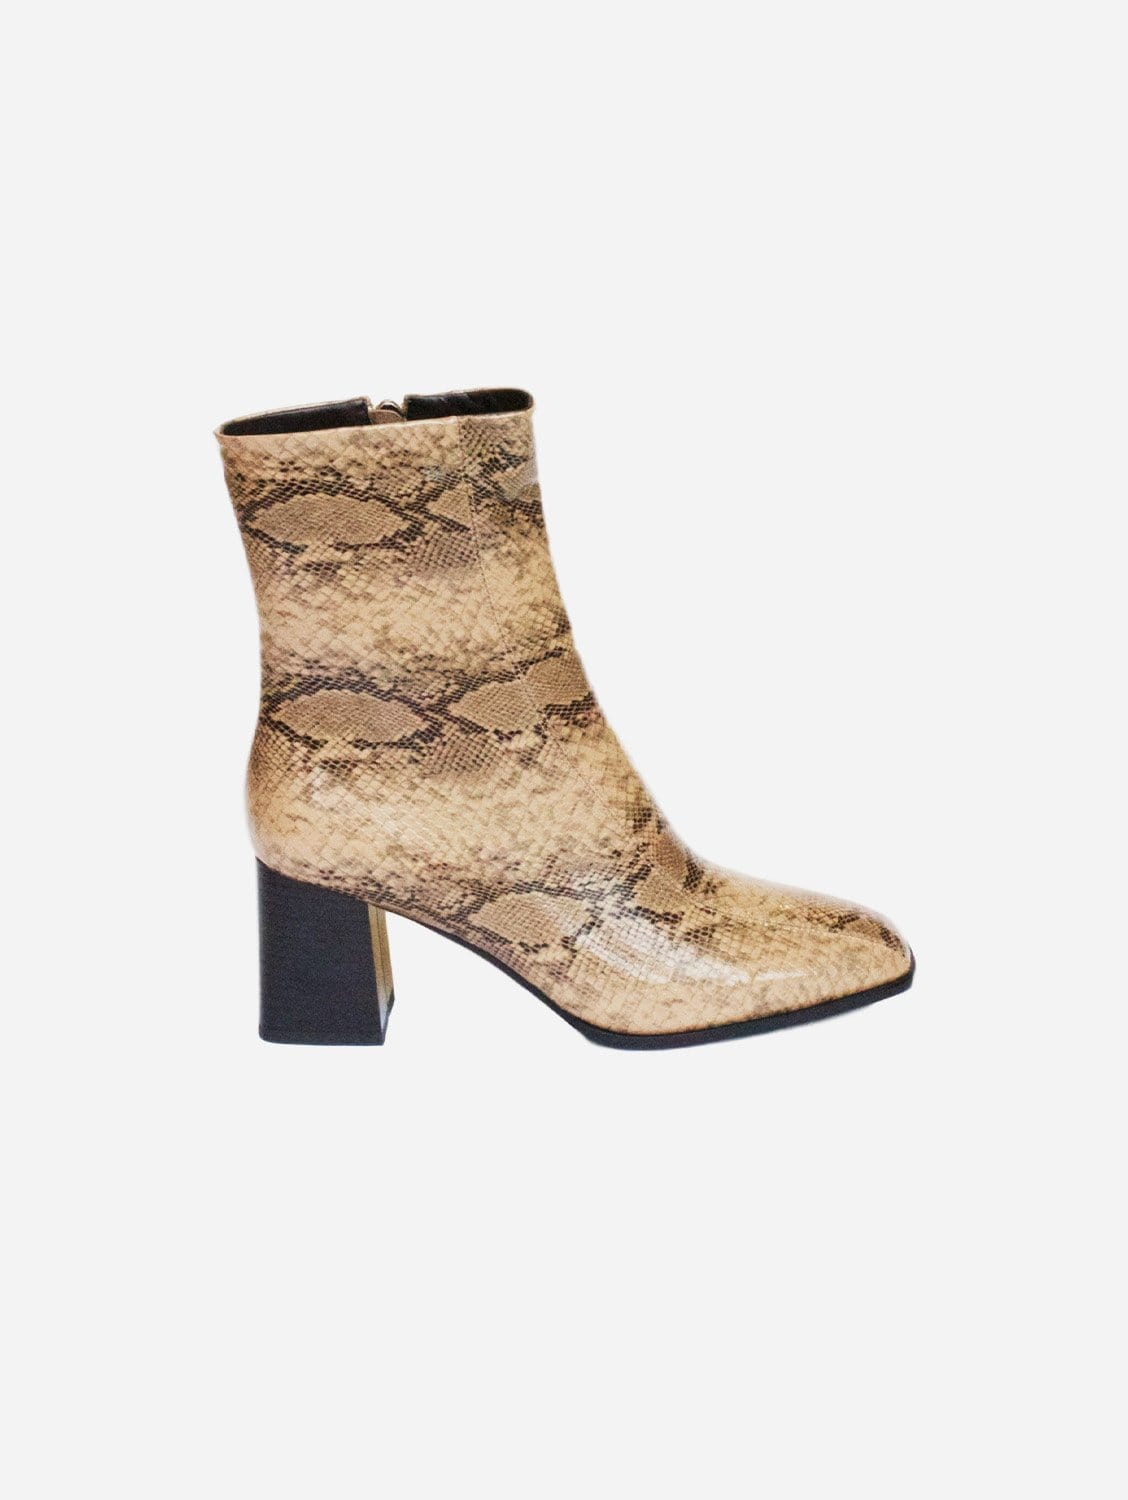 Roka Up-Cycled Vegan Leather Boot   Brown Snake